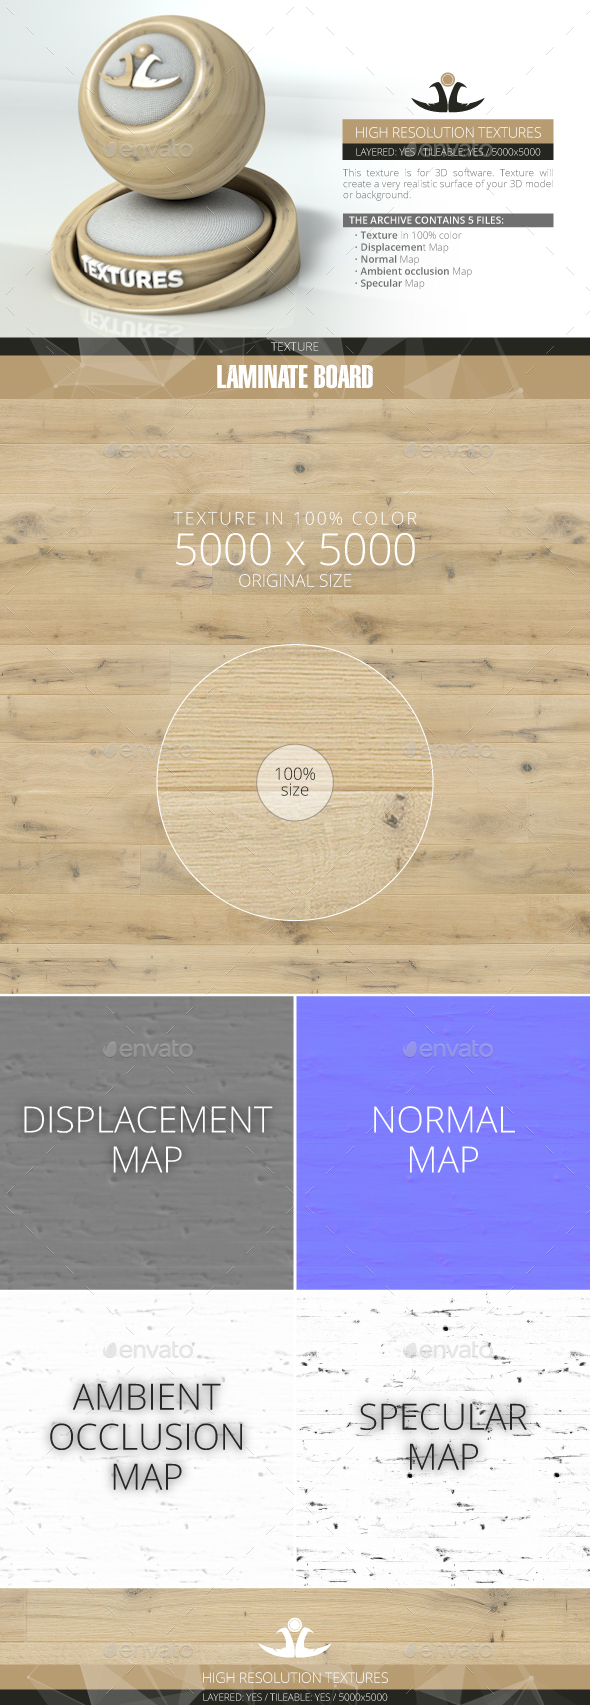 Laminate Board 18 - 3DOcean Item for Sale